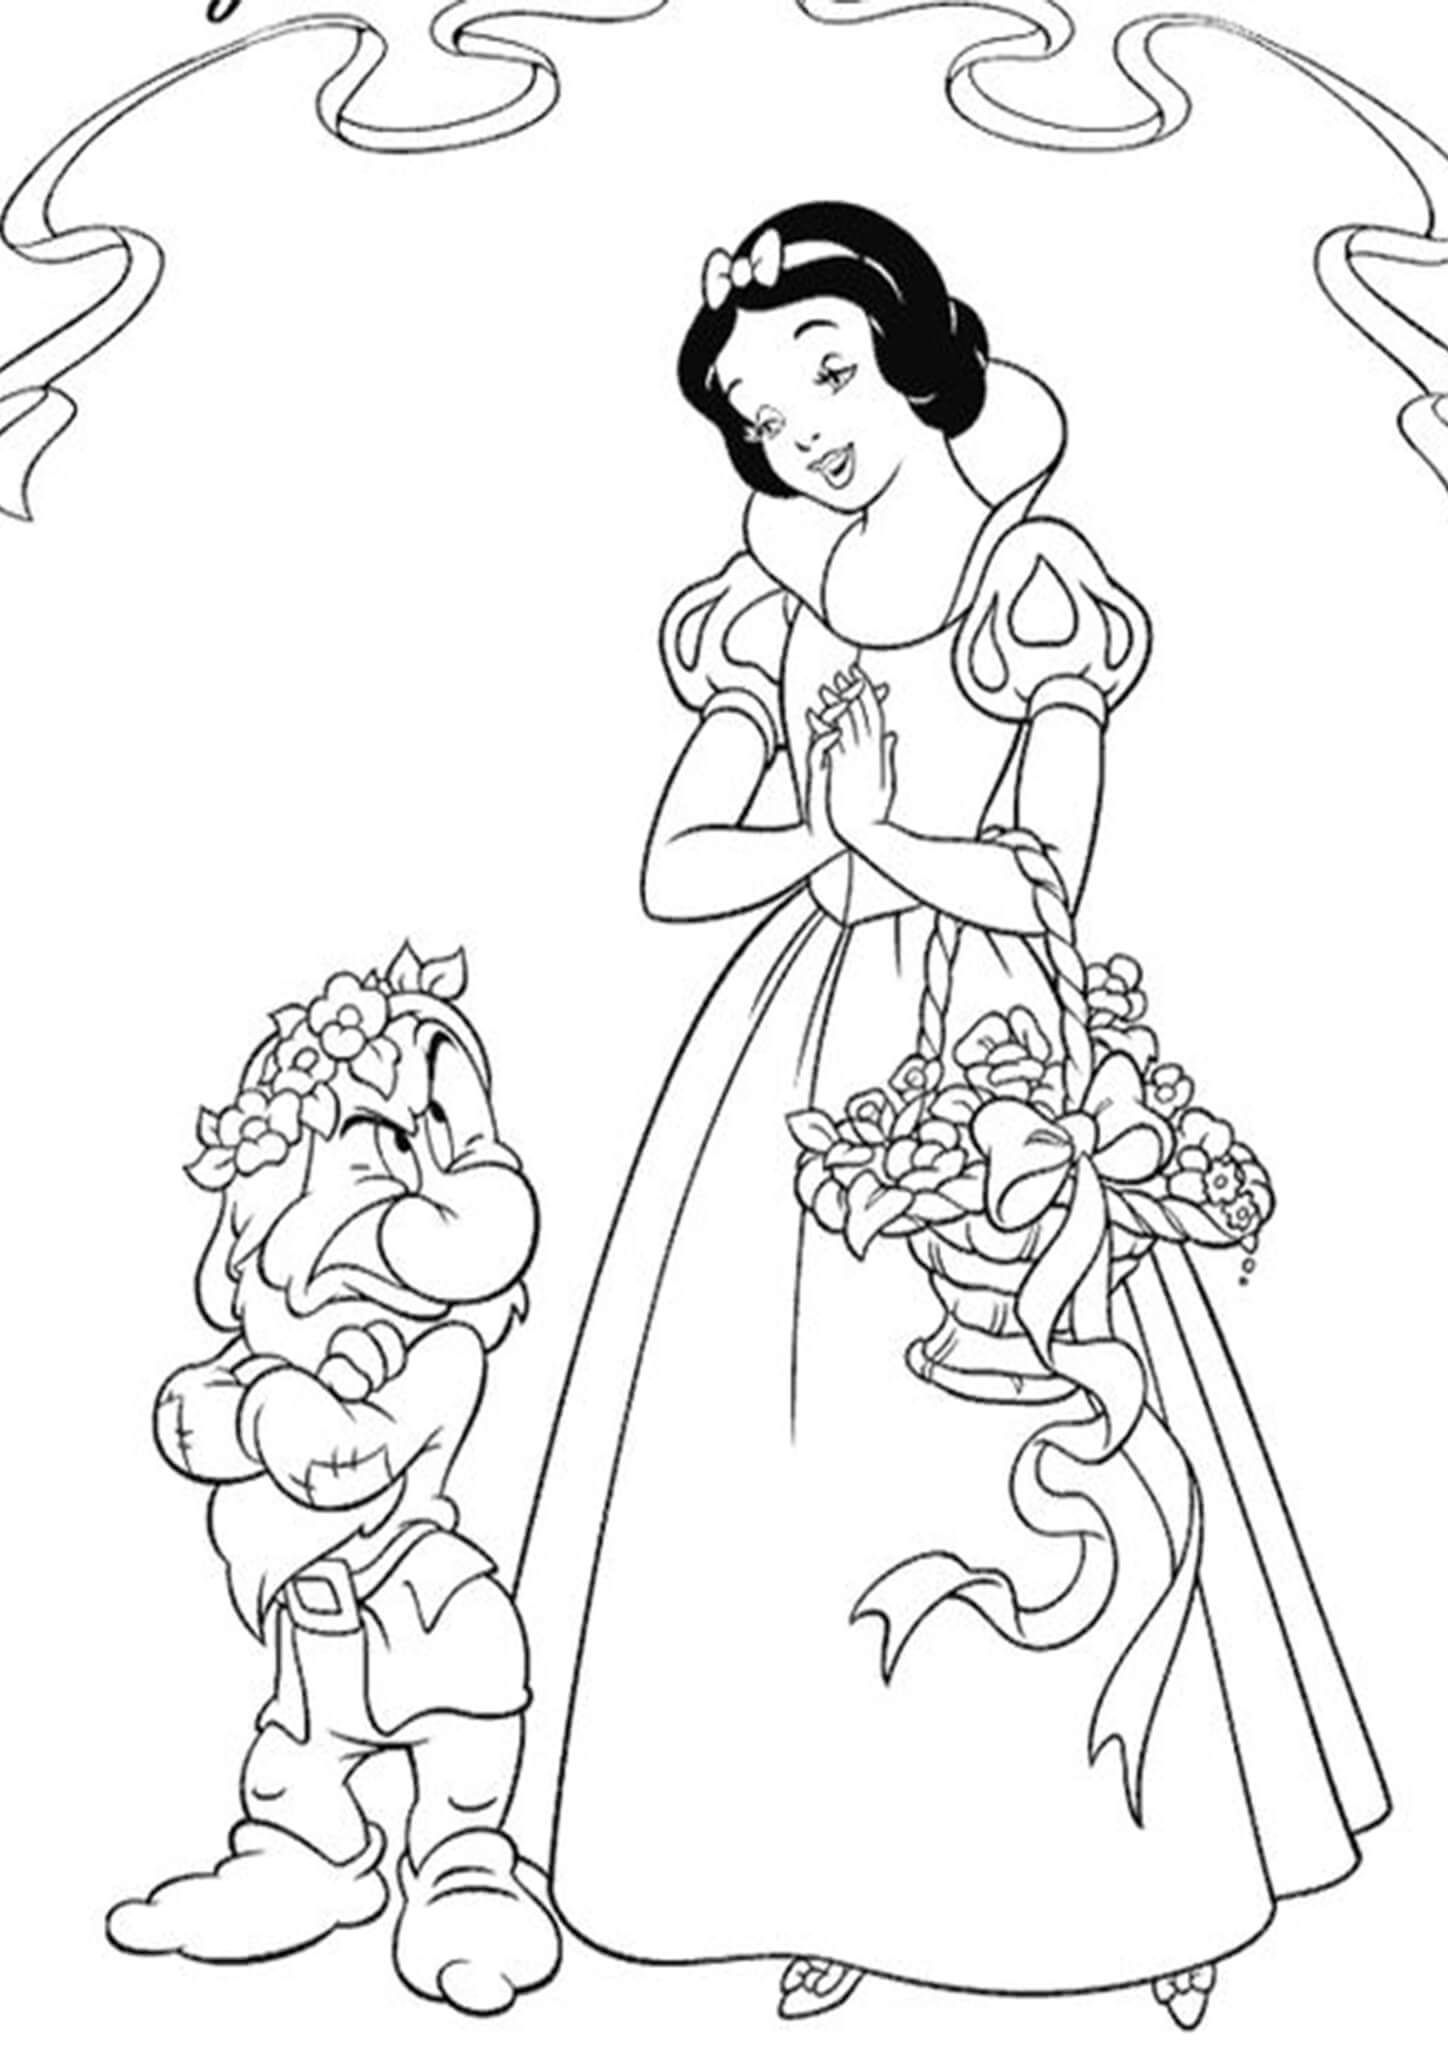 Free Easy To Print Snow White Coloring Pages In 2021 Disney Princess Coloring Pages Snow White Coloring Pages Princess Coloring Pages